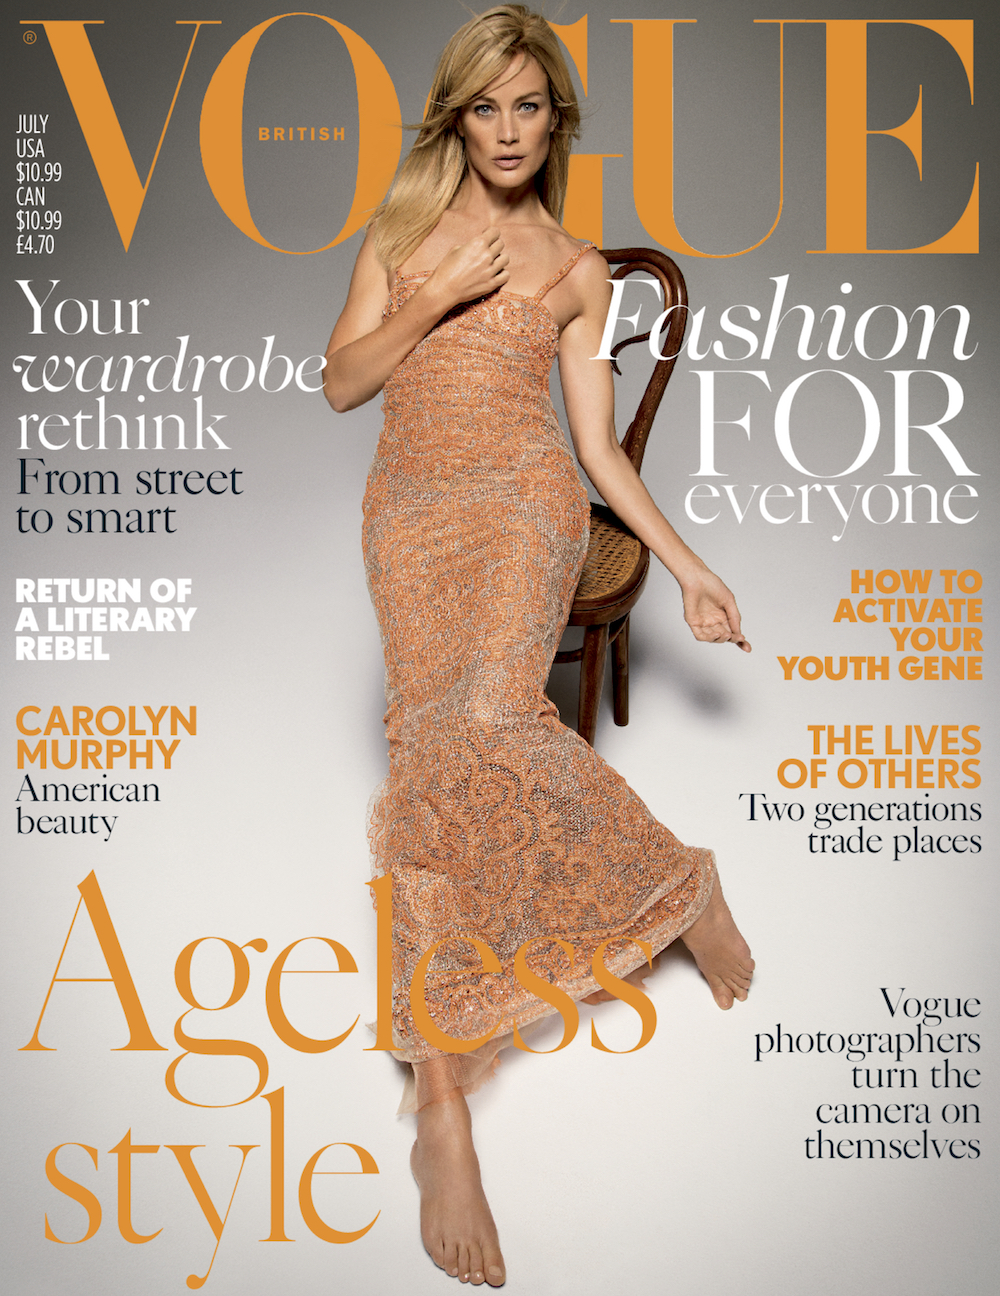 BRITISH VOGUE JULY 2017- THE MARIGOLD RING